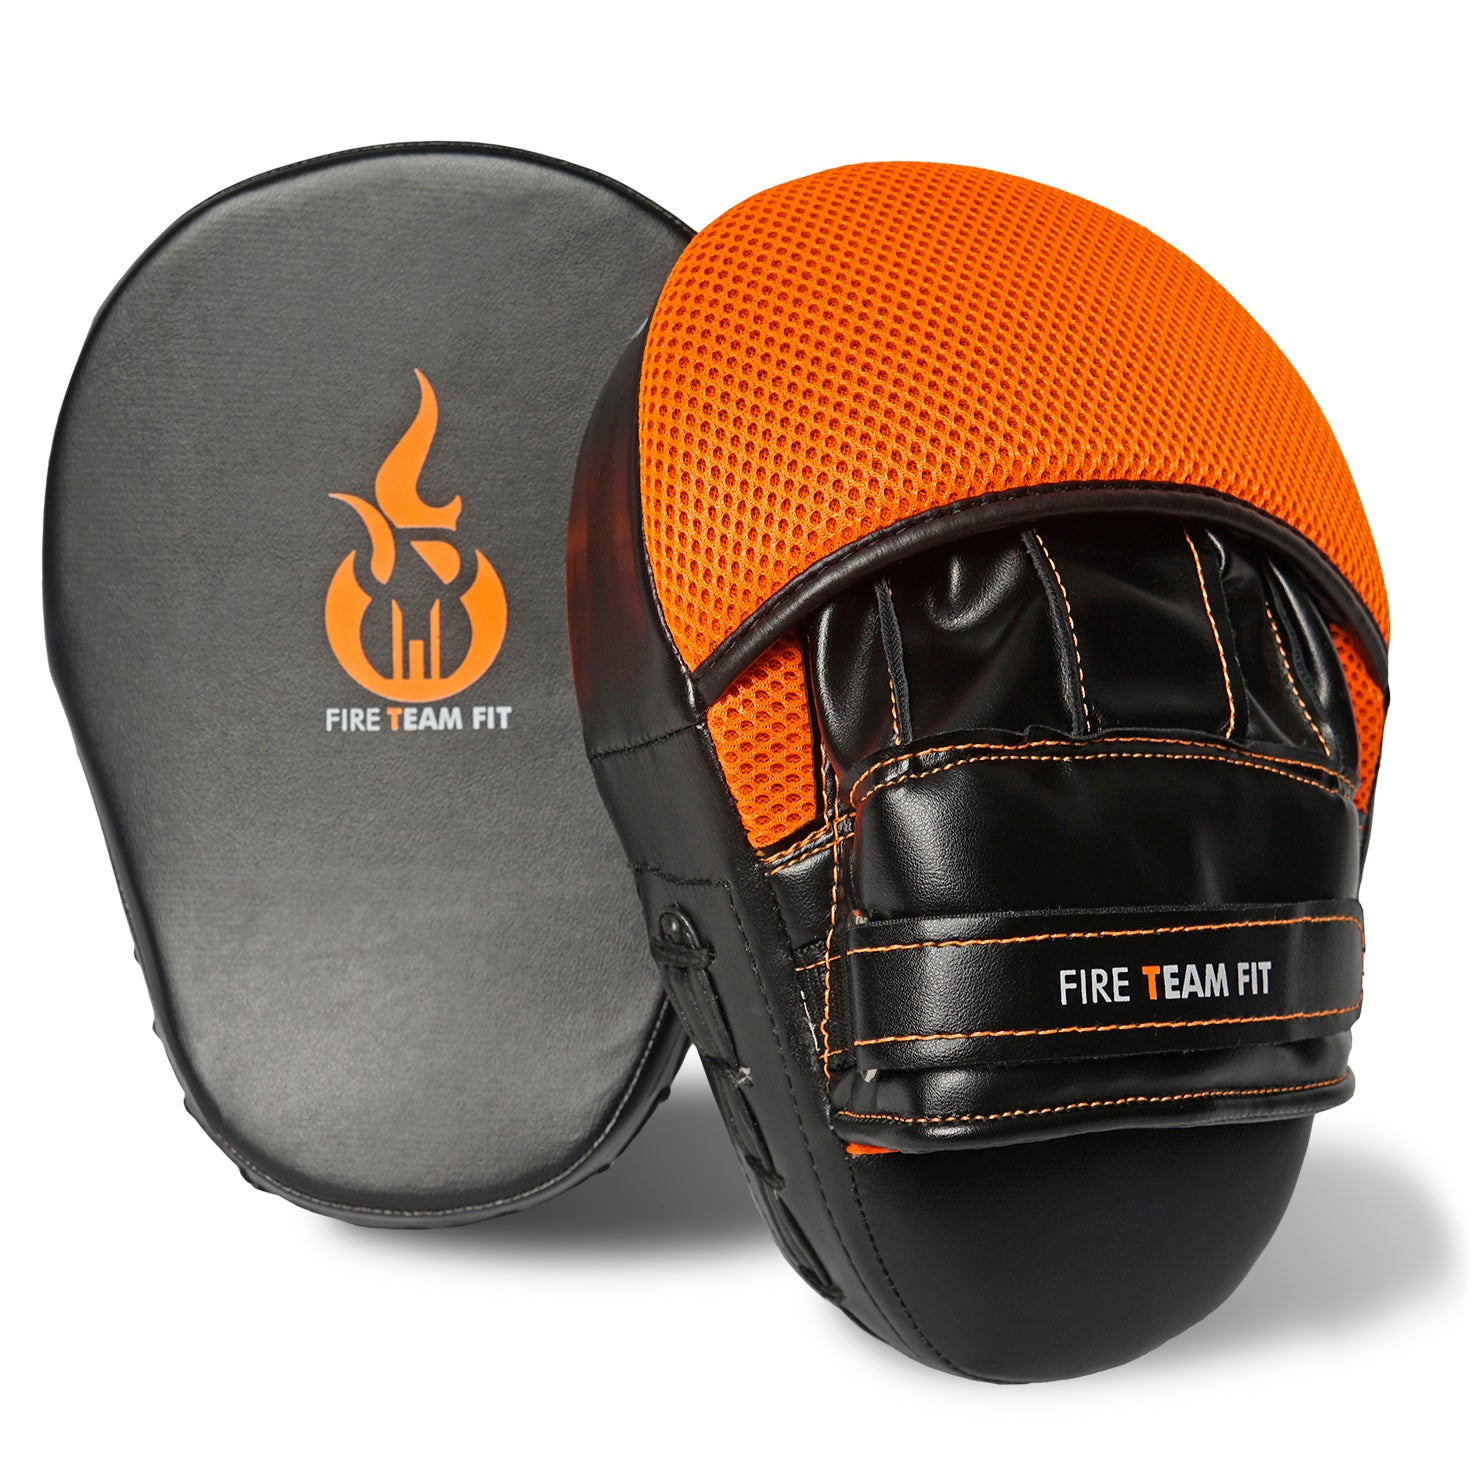 Fire Team Fit Boxing Mitts | Focus Mitts | Muay Thai Pads | Punching Mitts | Boxing Pads| Boxing Training Equipment